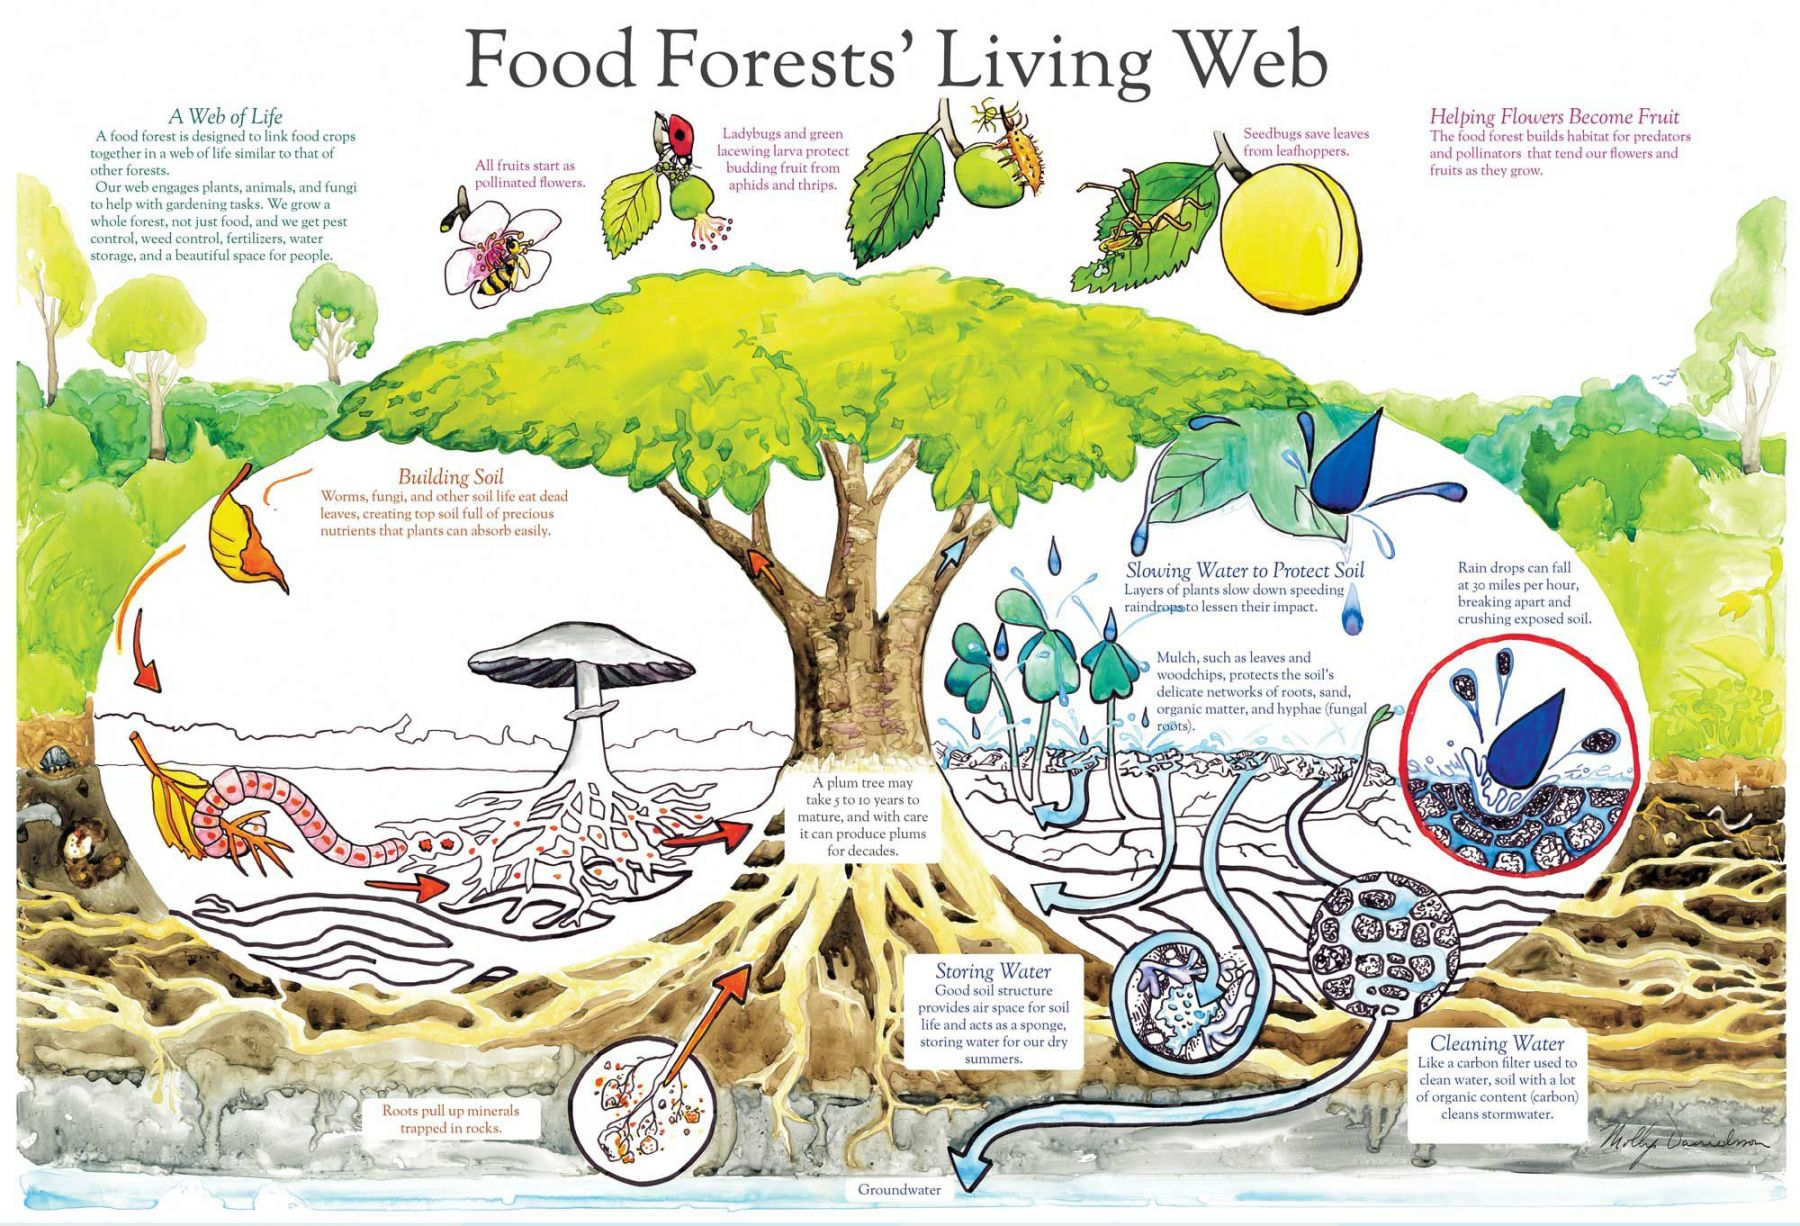 Agroforestry is the combination of crops and trees in forest-inspired agricultural systems that benefit both humans and nature. However, without ...